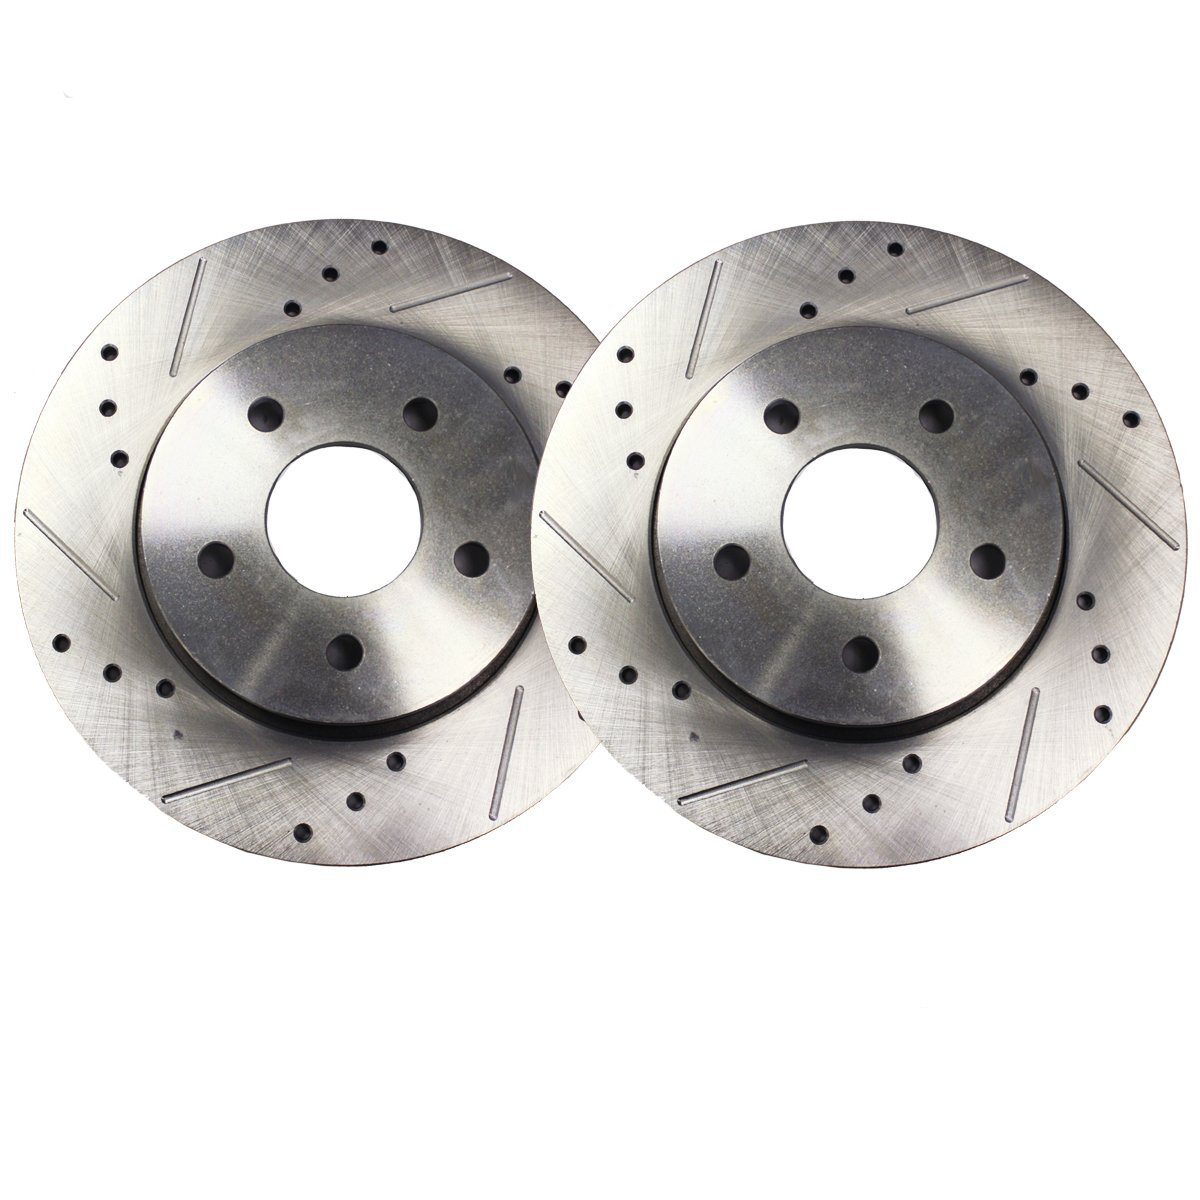 REAR PERFORMANCE DRILLED AND SLOTTED BRAKE Rotors For AUDI A4 Quattro VW Passat